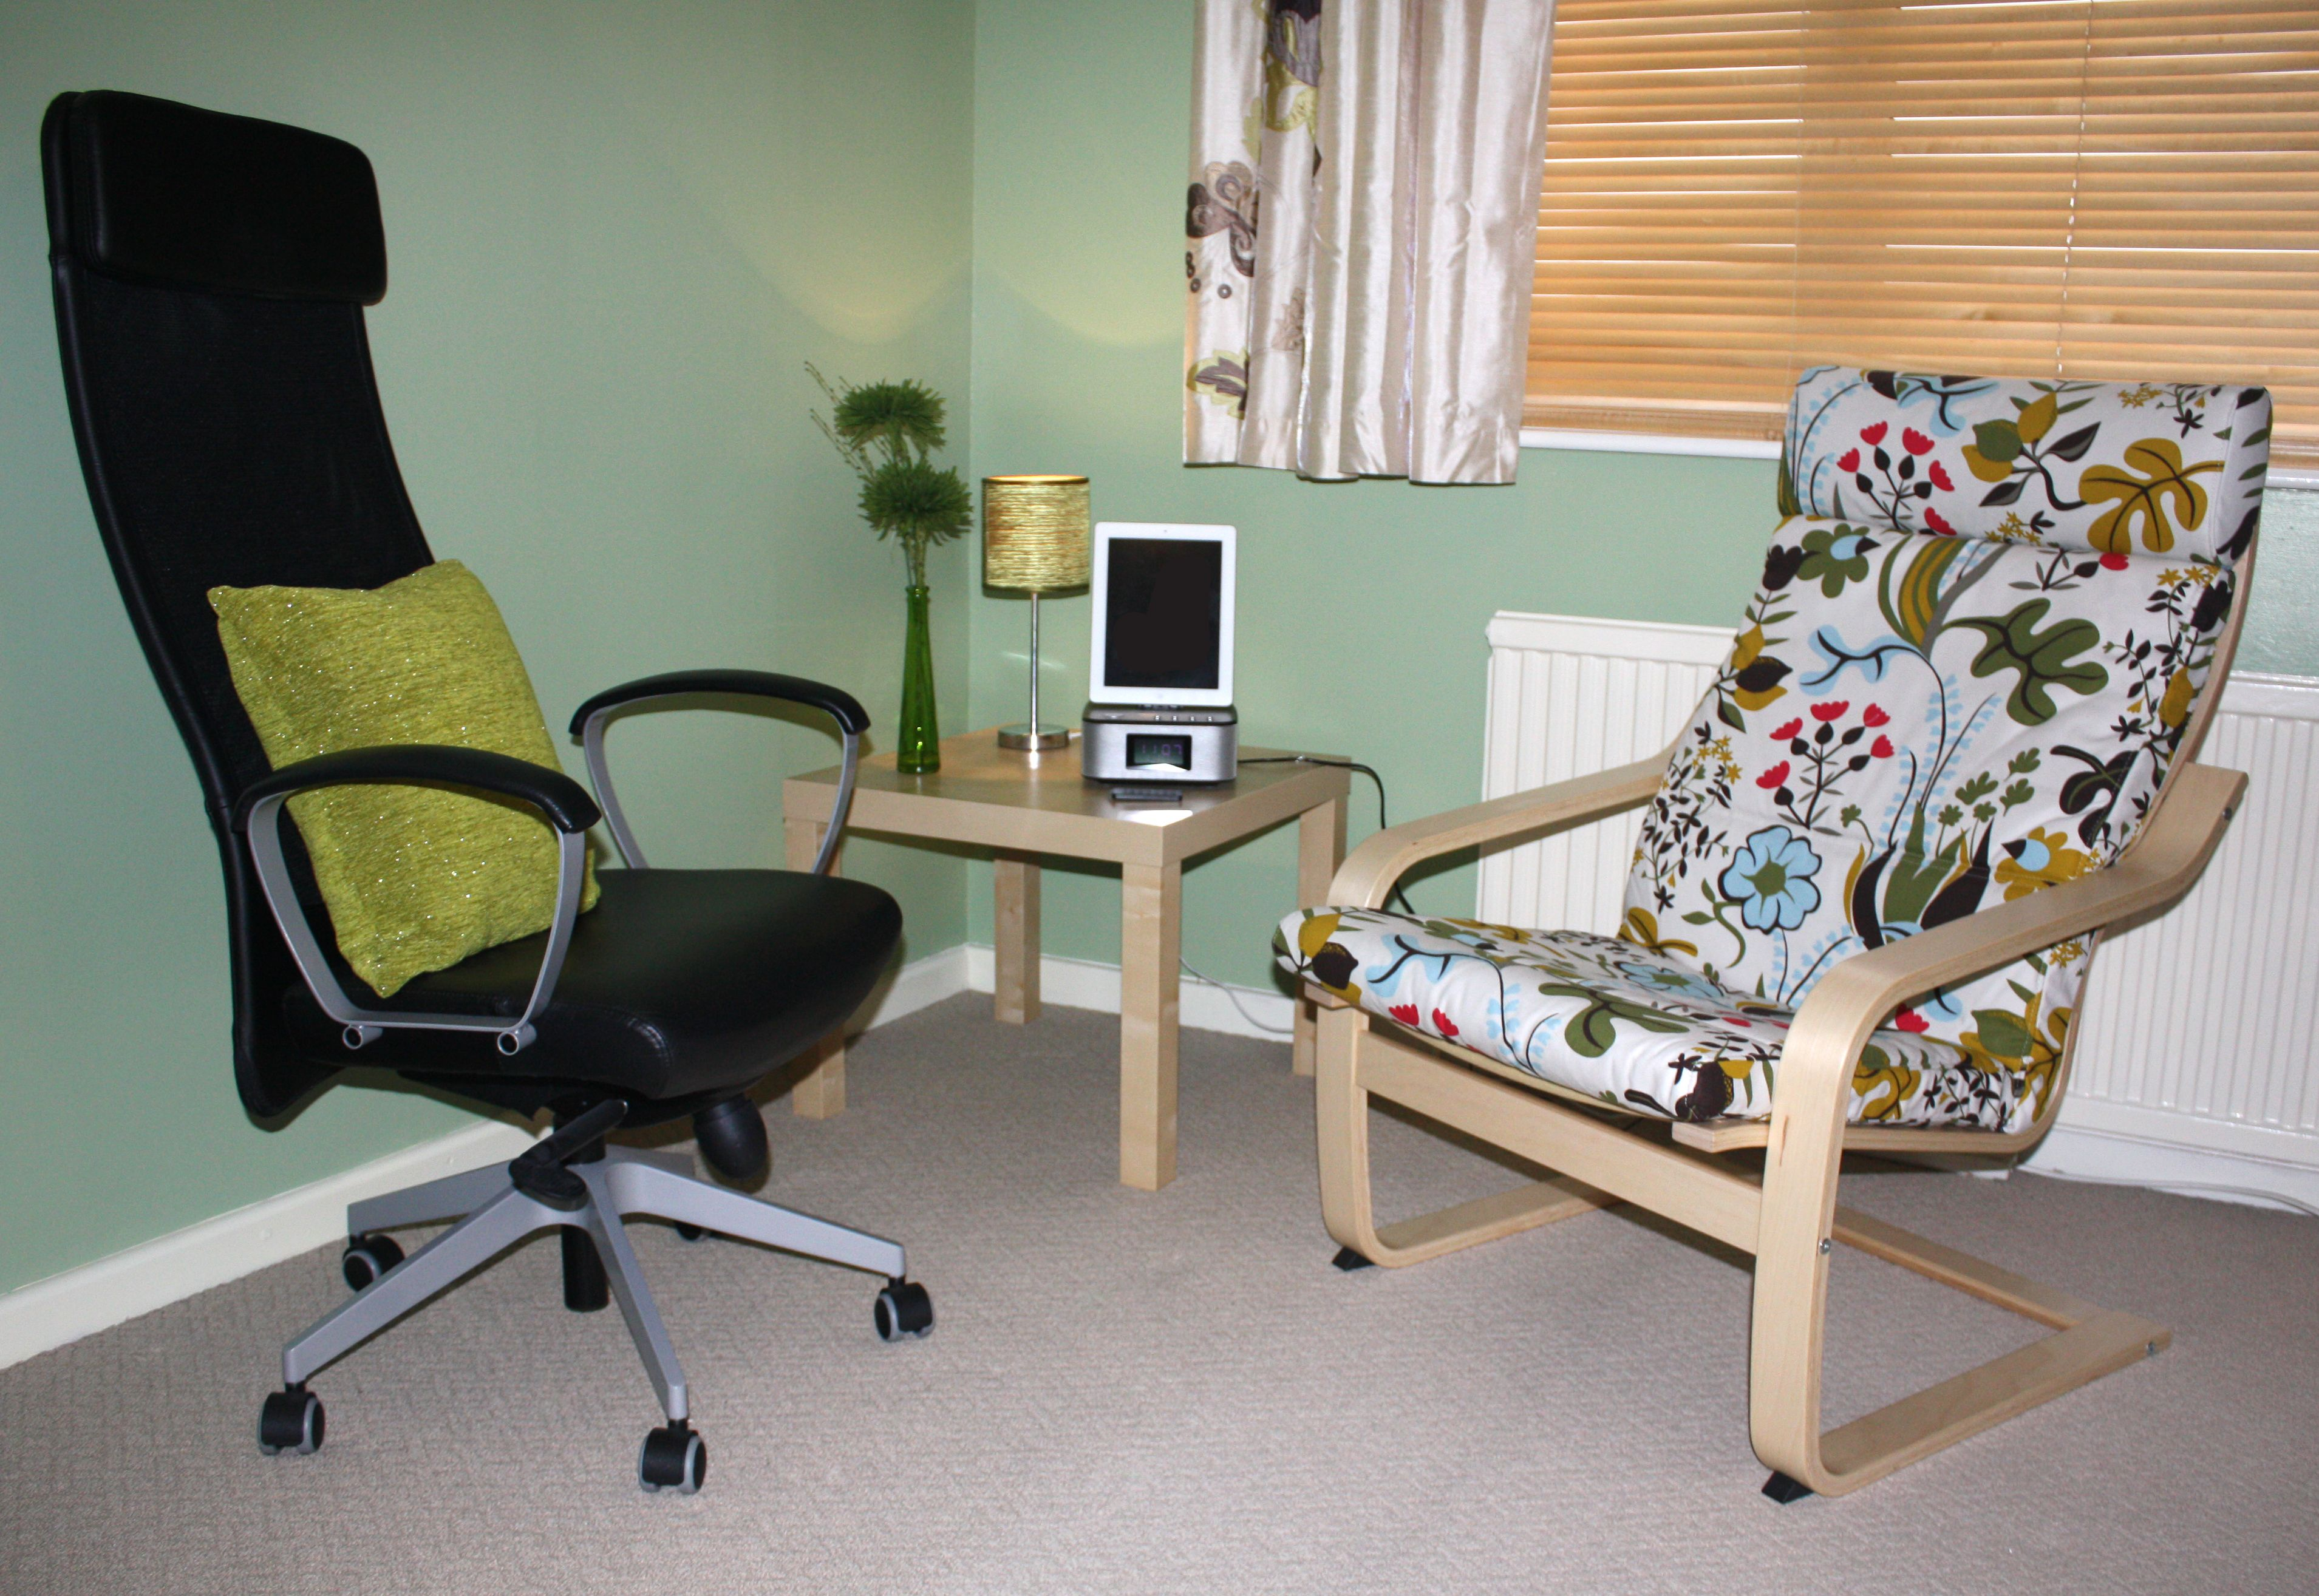 Our hypnotherpists are warm, welcoming and looking forward to helping you gain control of your life. Contact us today at mirfieldhypnotherapycentre.com/contact